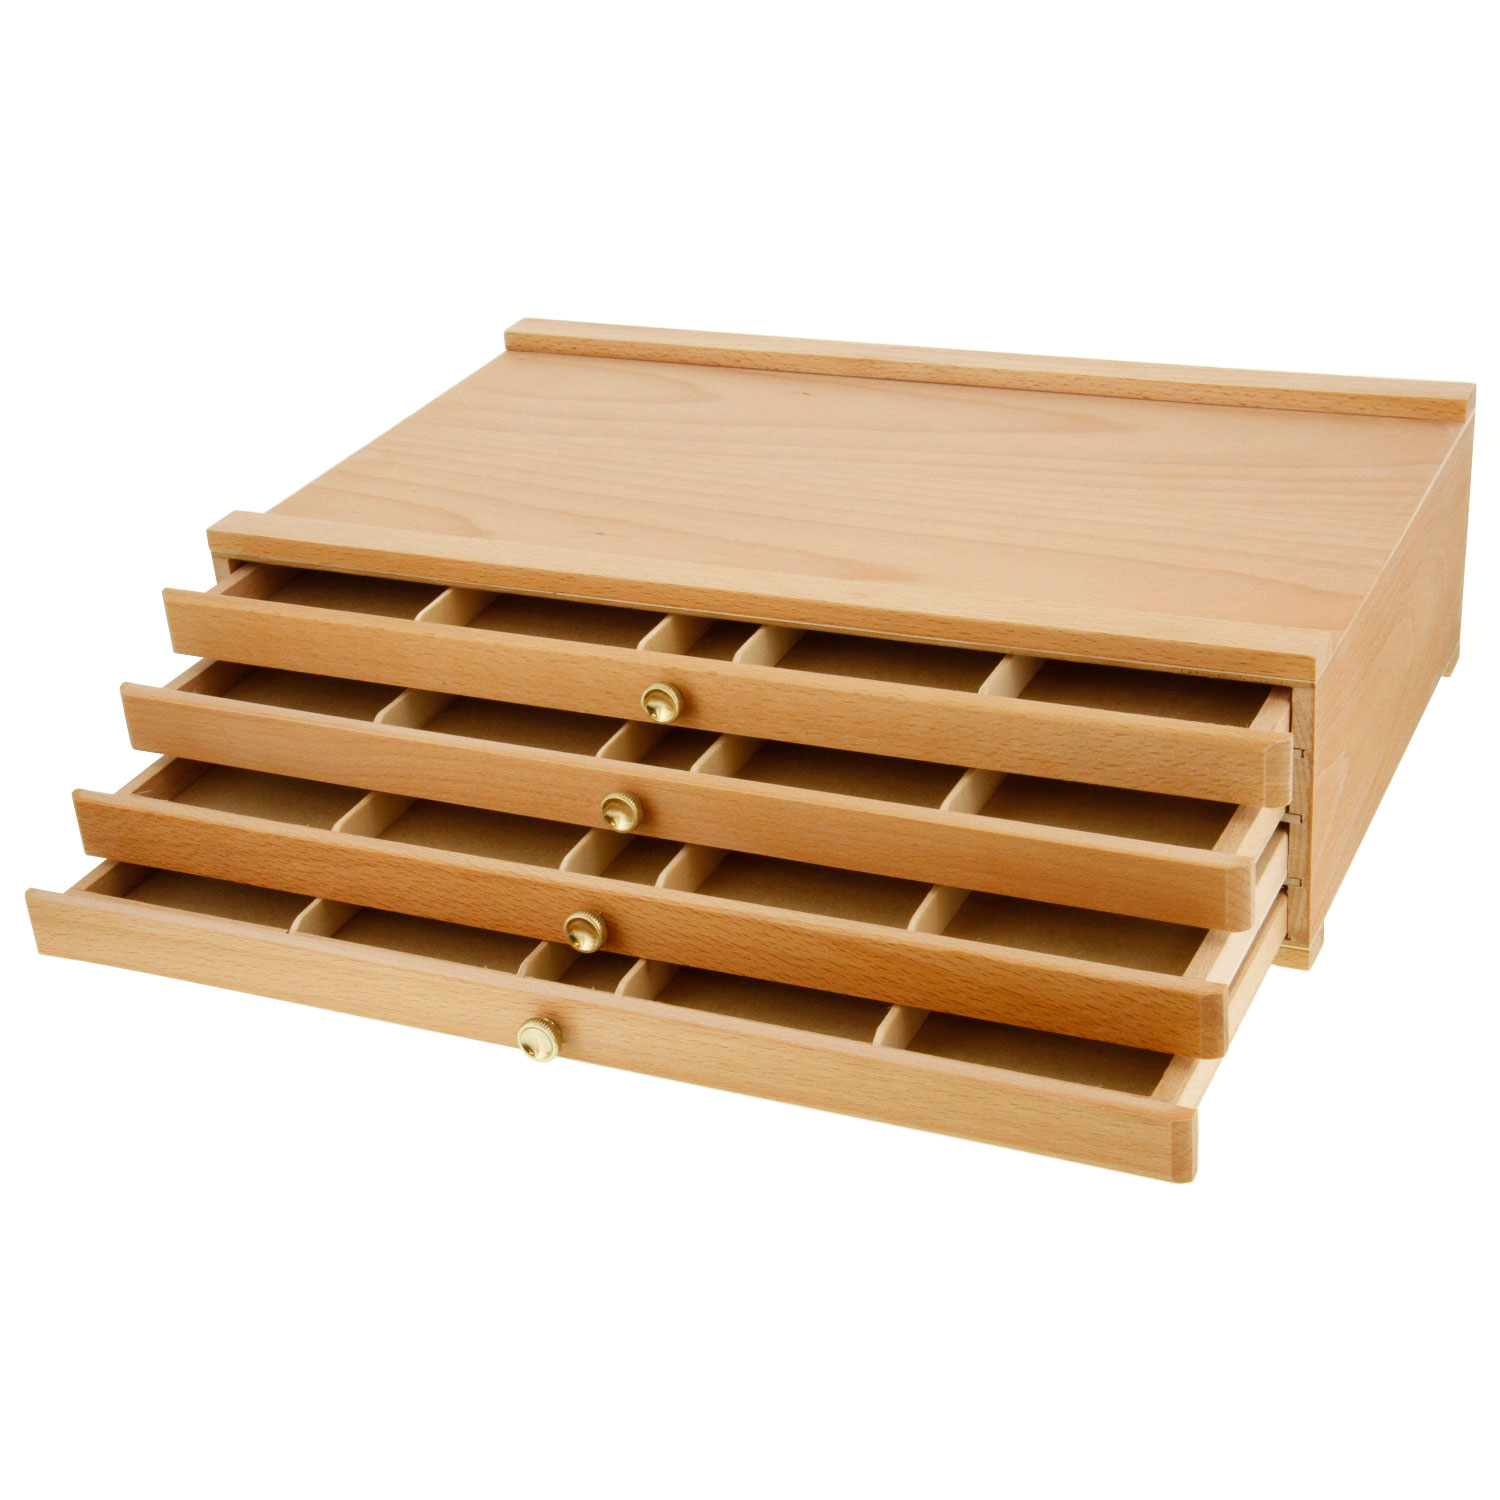 Very Impressive portraiture of  ® Artist Wood Pastel Pen Marker Storage Box with 4 Drawers eBay with #381804 color and 1500x1500 pixels